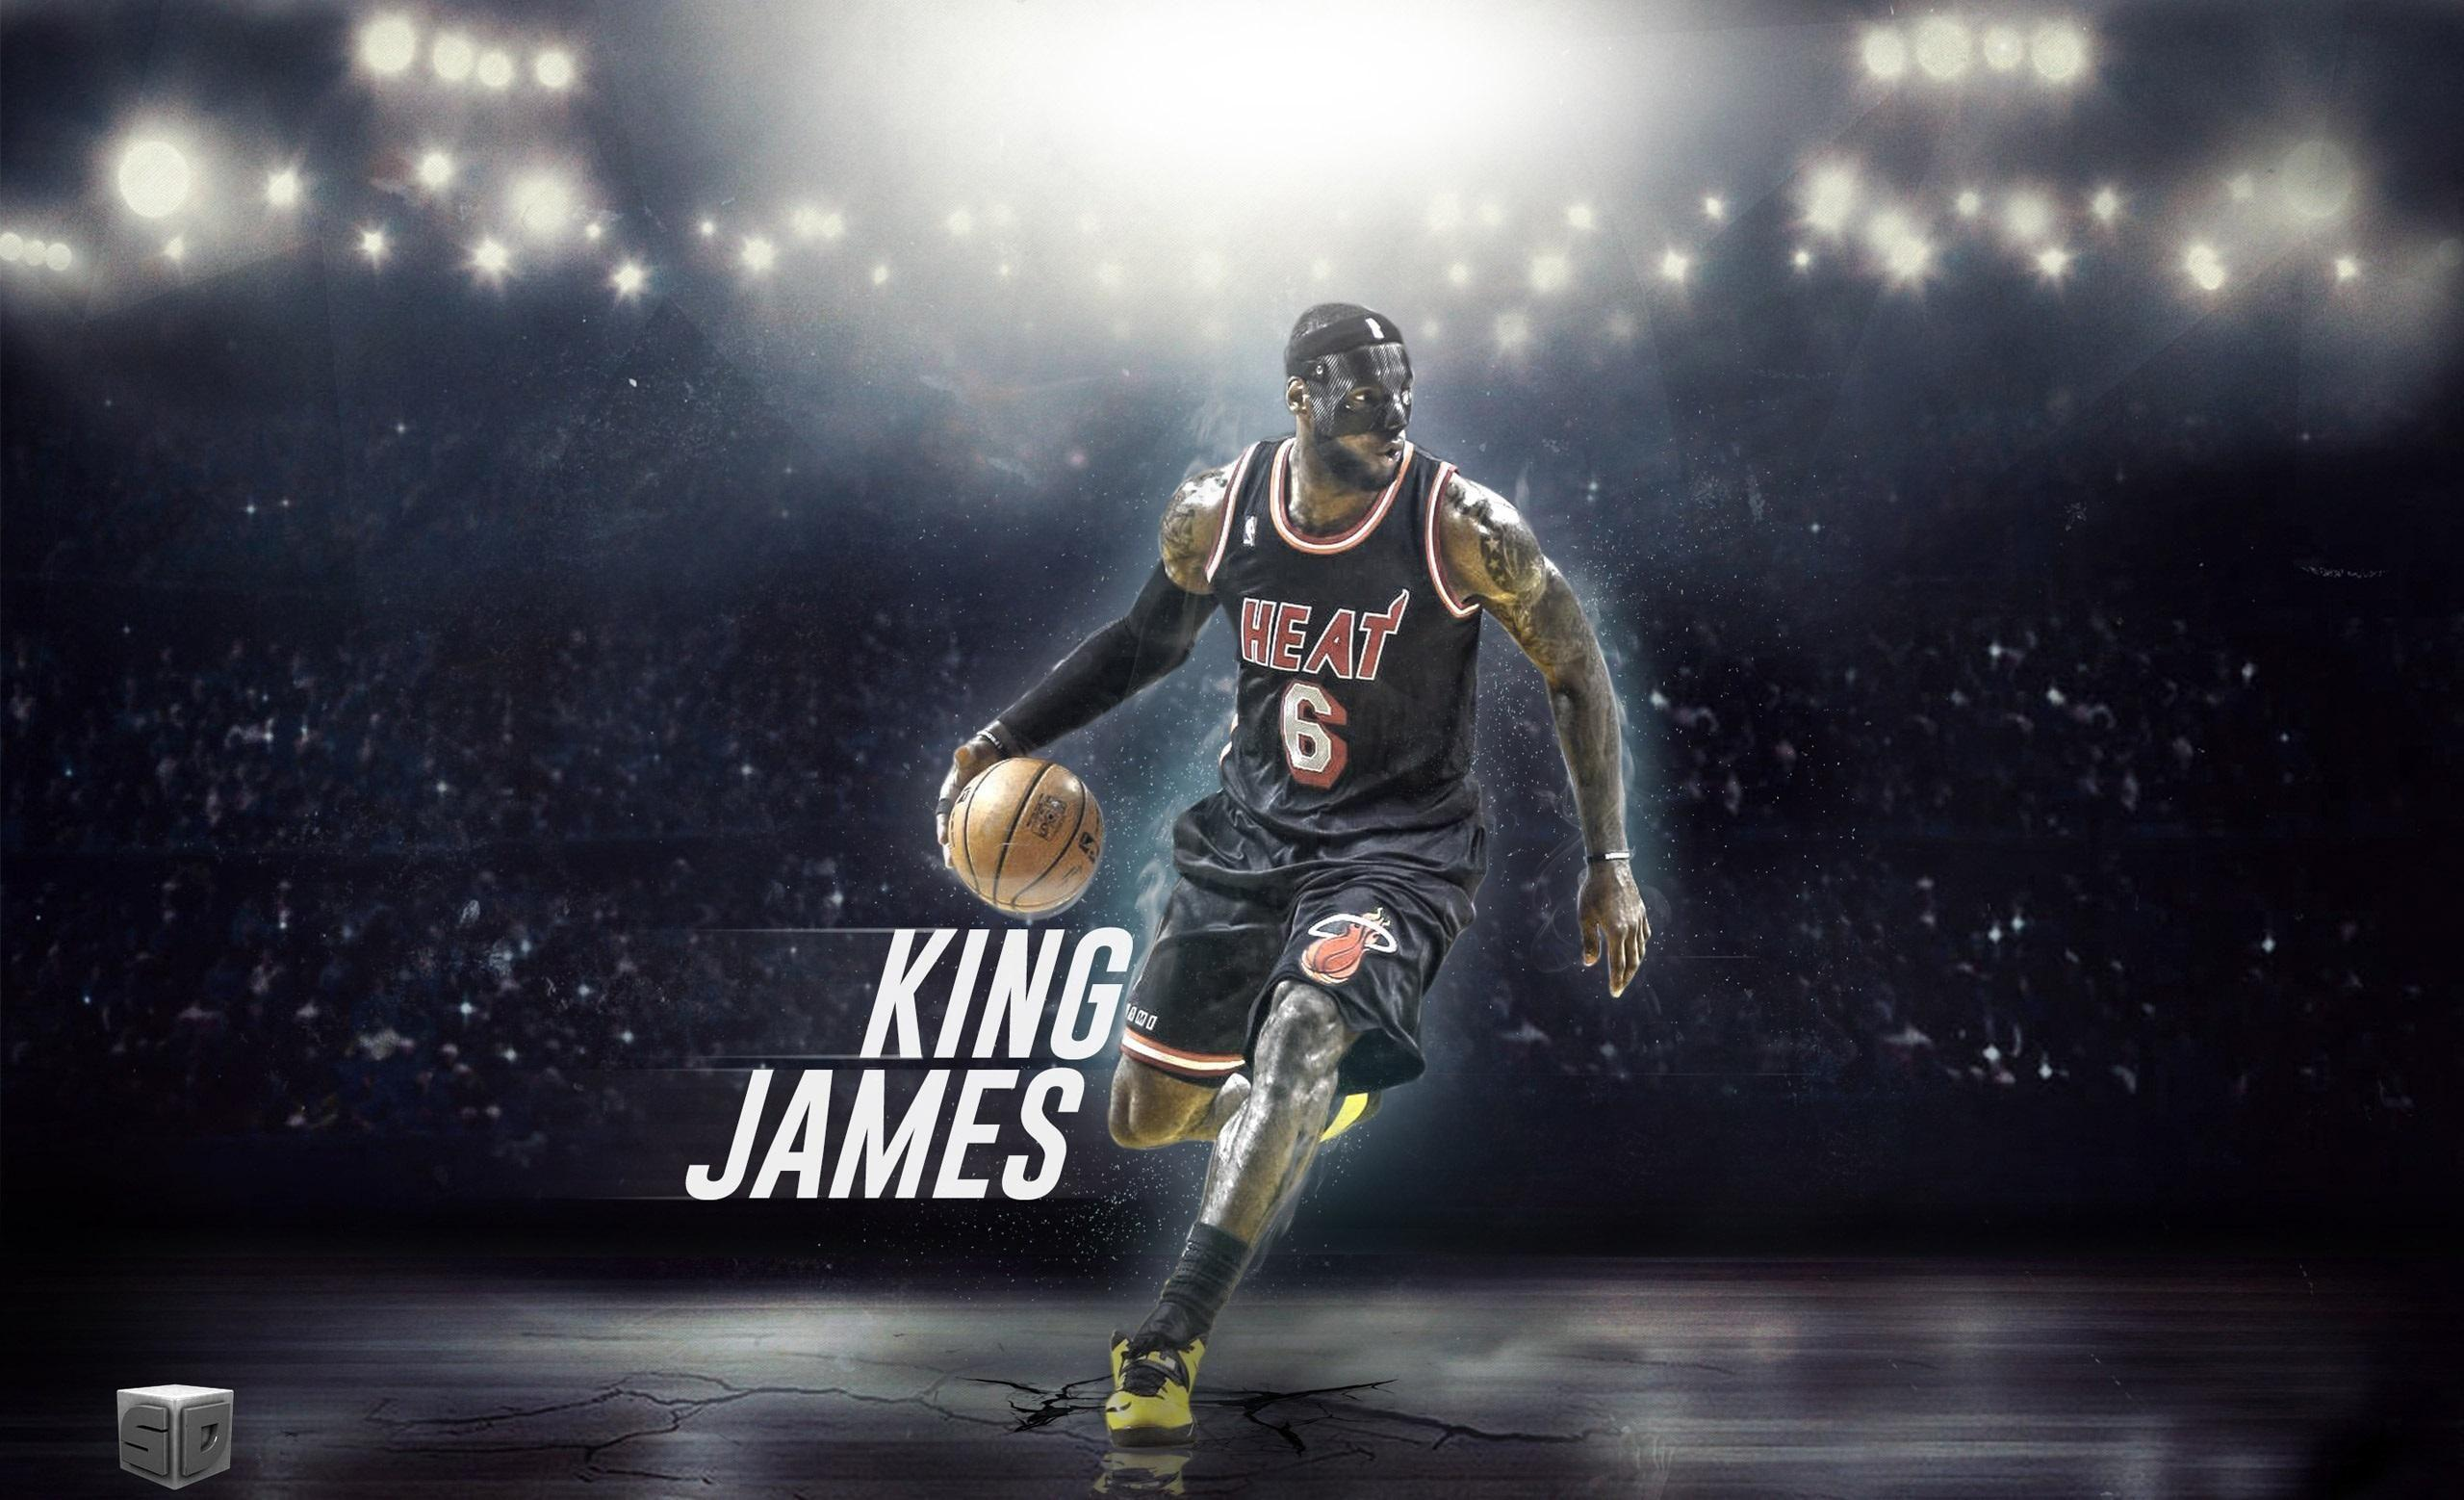 xpx Lebron James Lakers Wallpapers